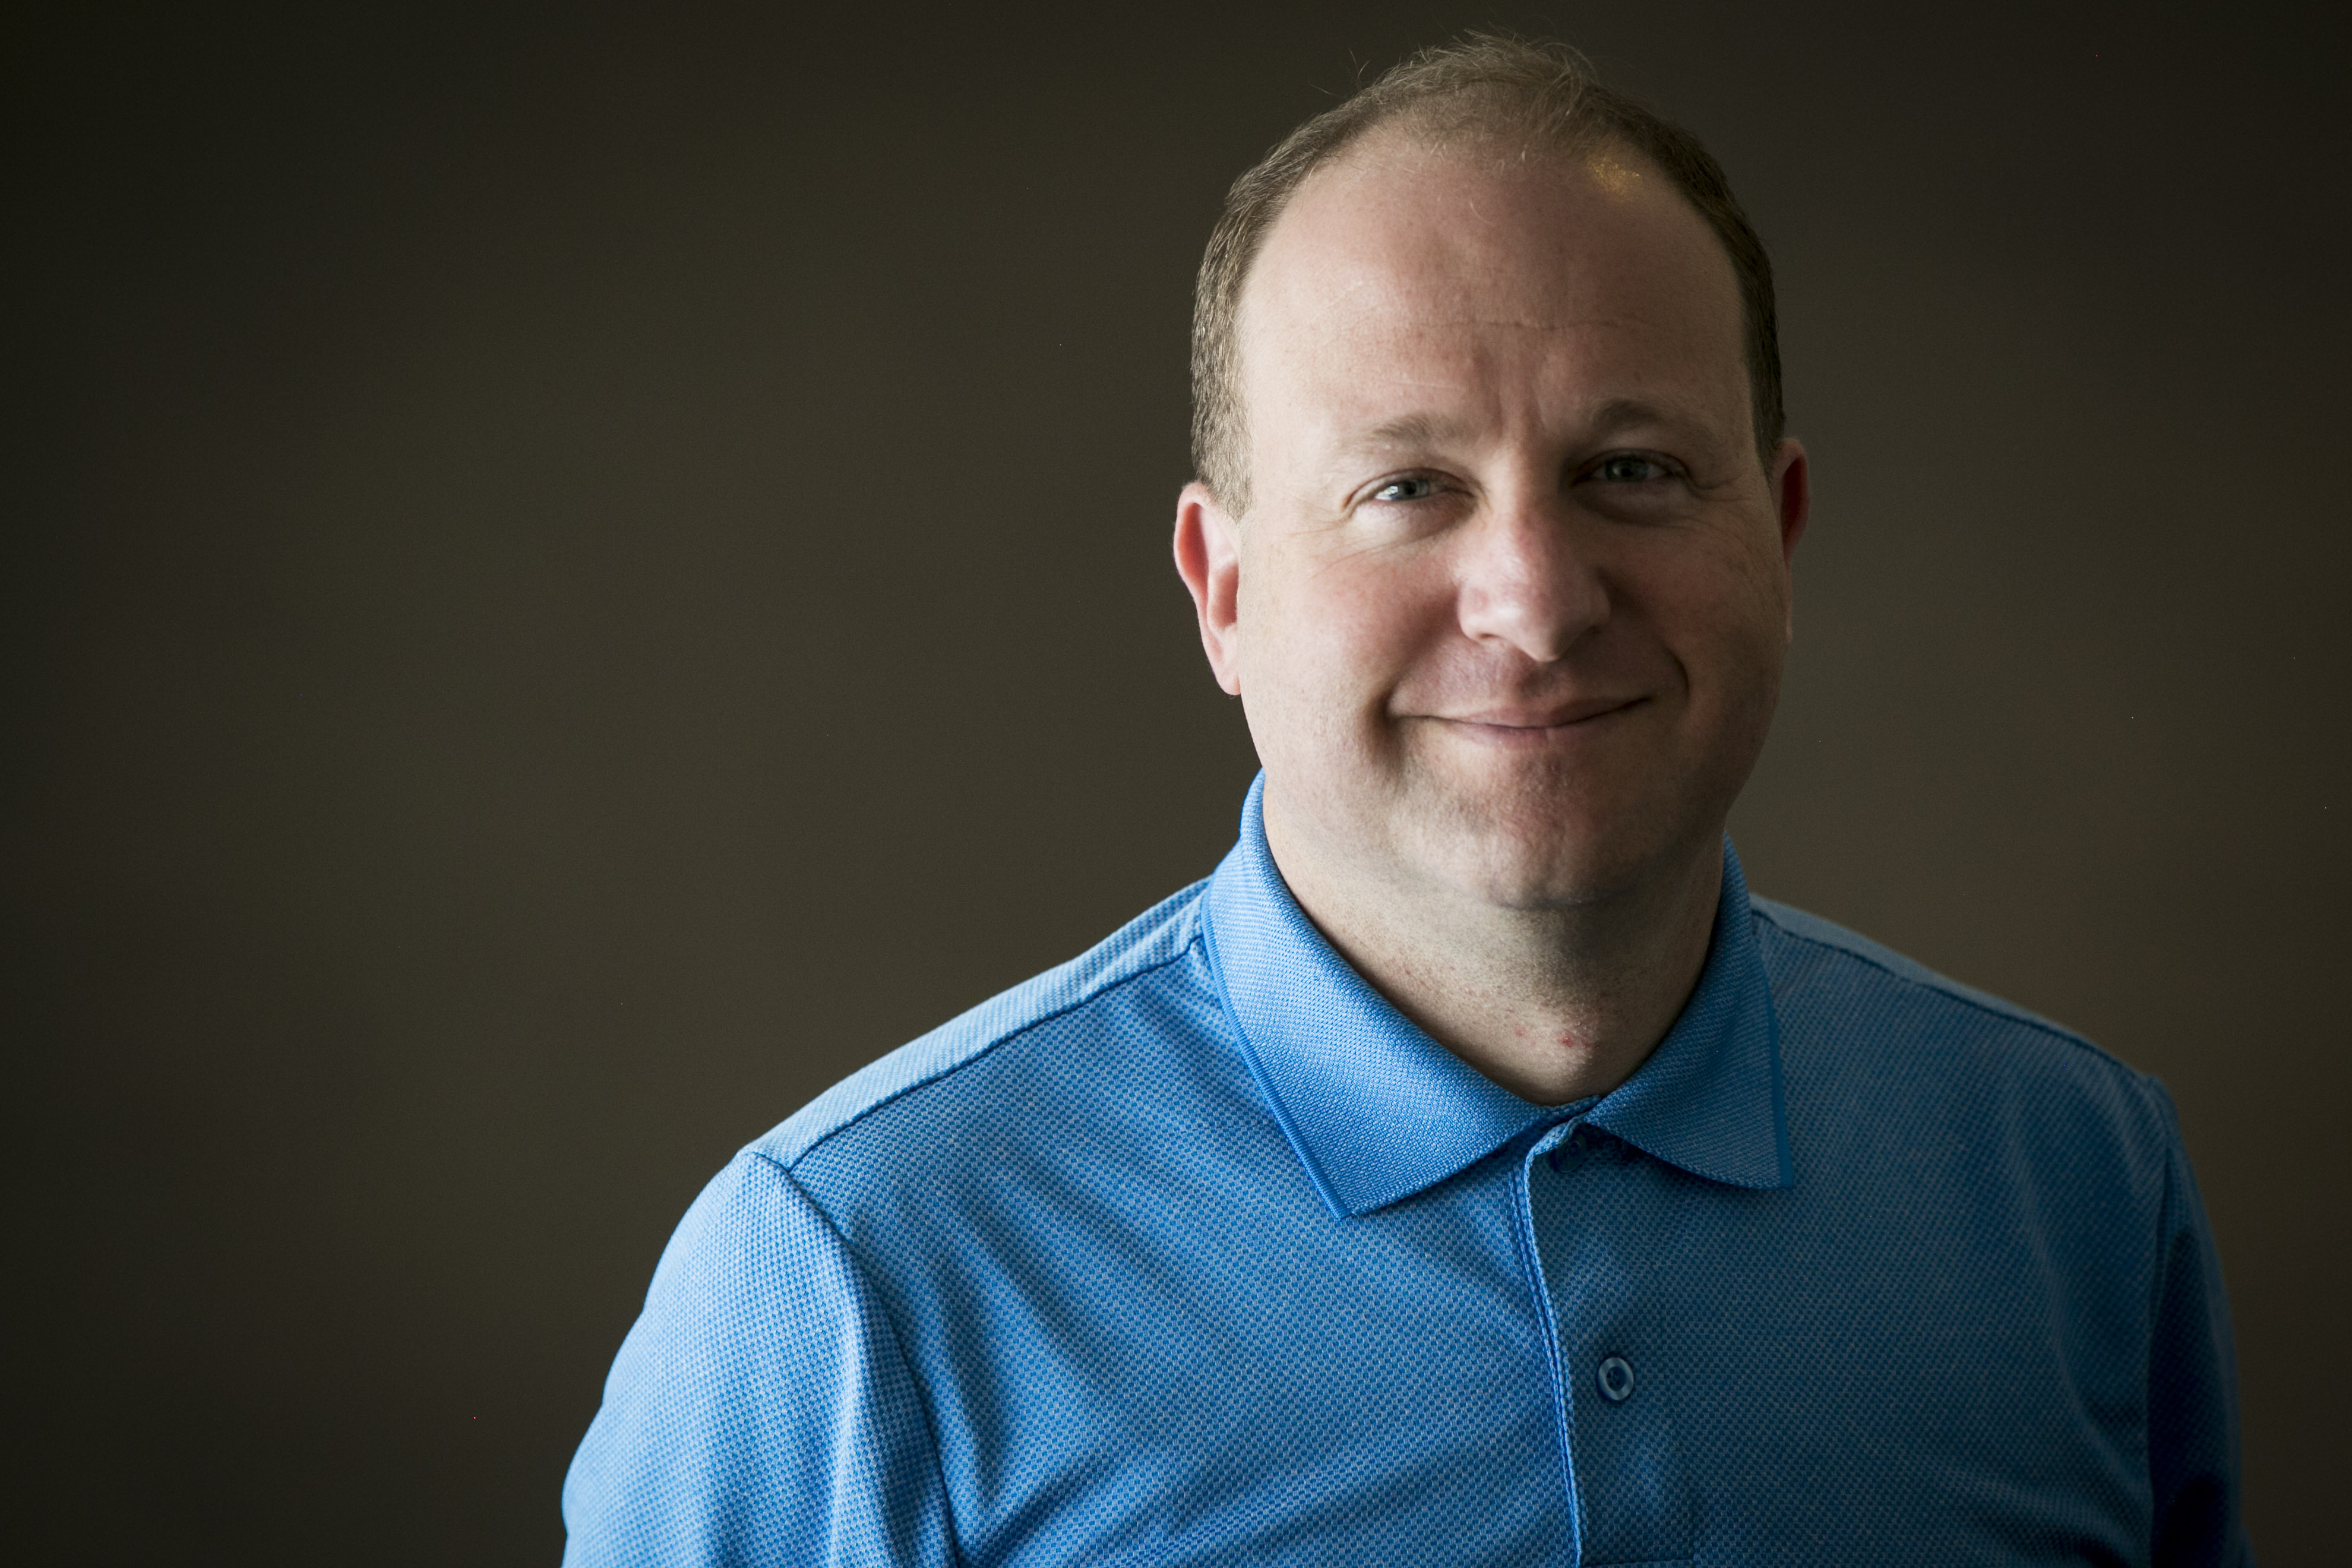 <p>U.S. Rep. Jared Polis, a Democrat from Boulder, is running for governor ofColorado.</p>